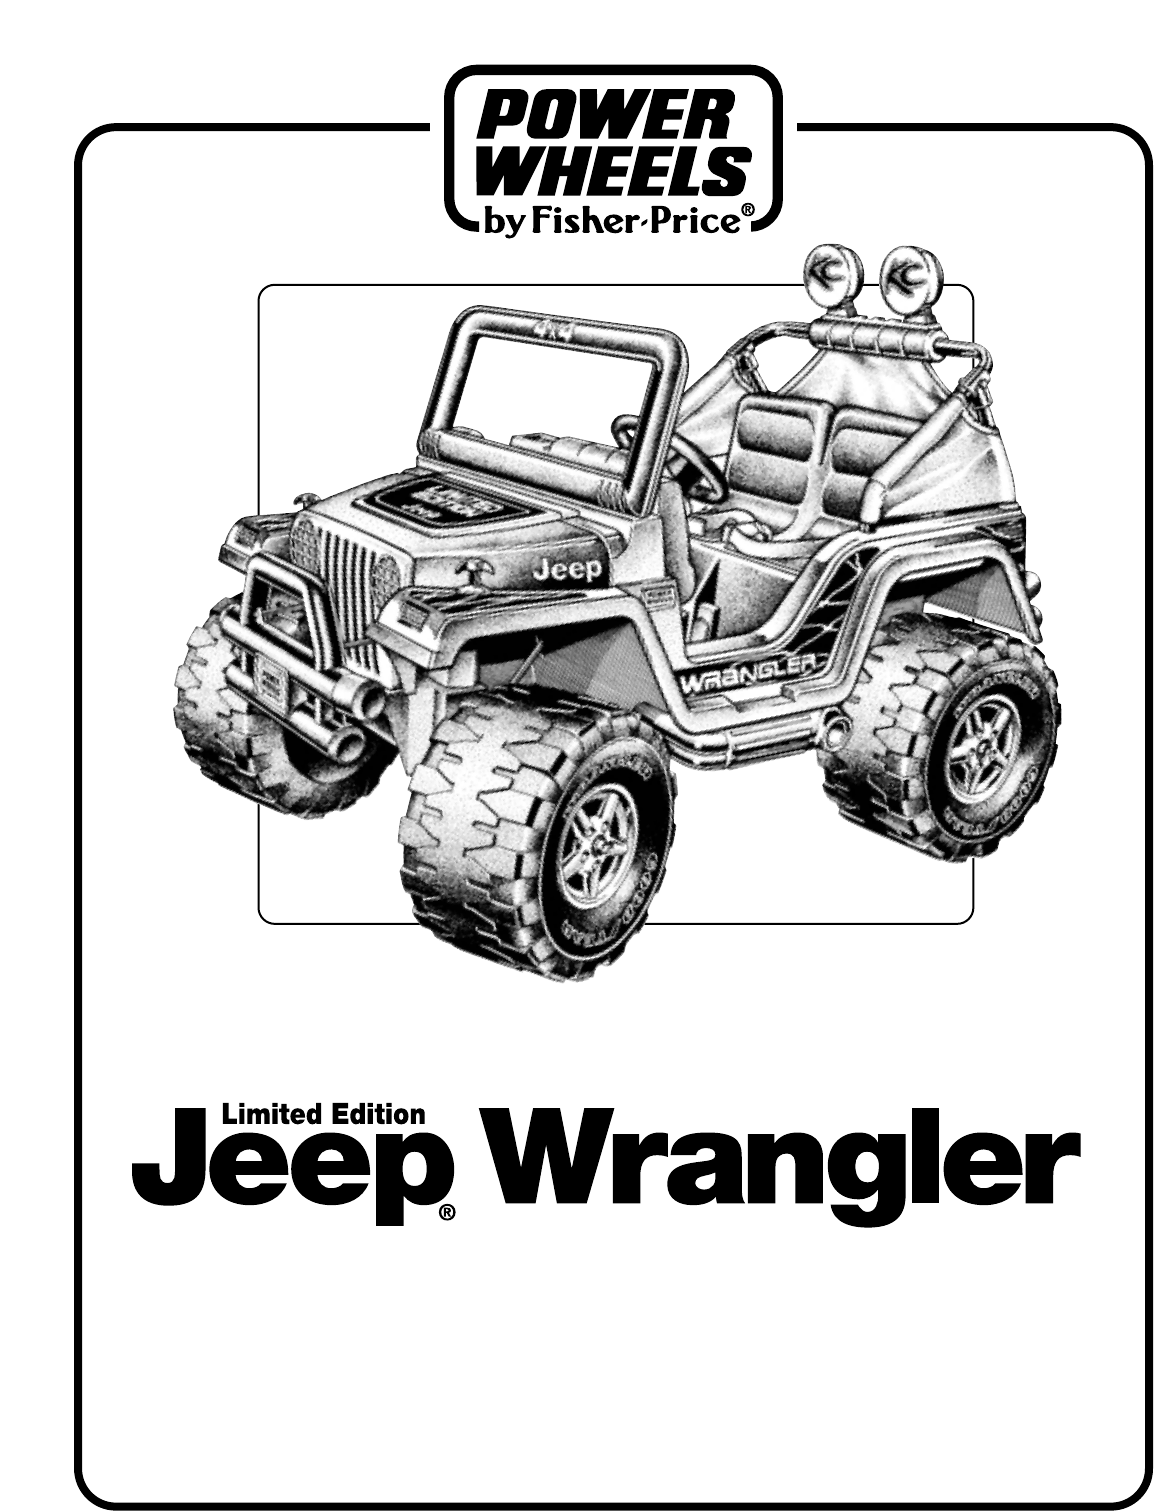 Jeep 75598 Users Manual Quick Tip 16 Threeway Twoway Or Oneway Switch Misterfixit